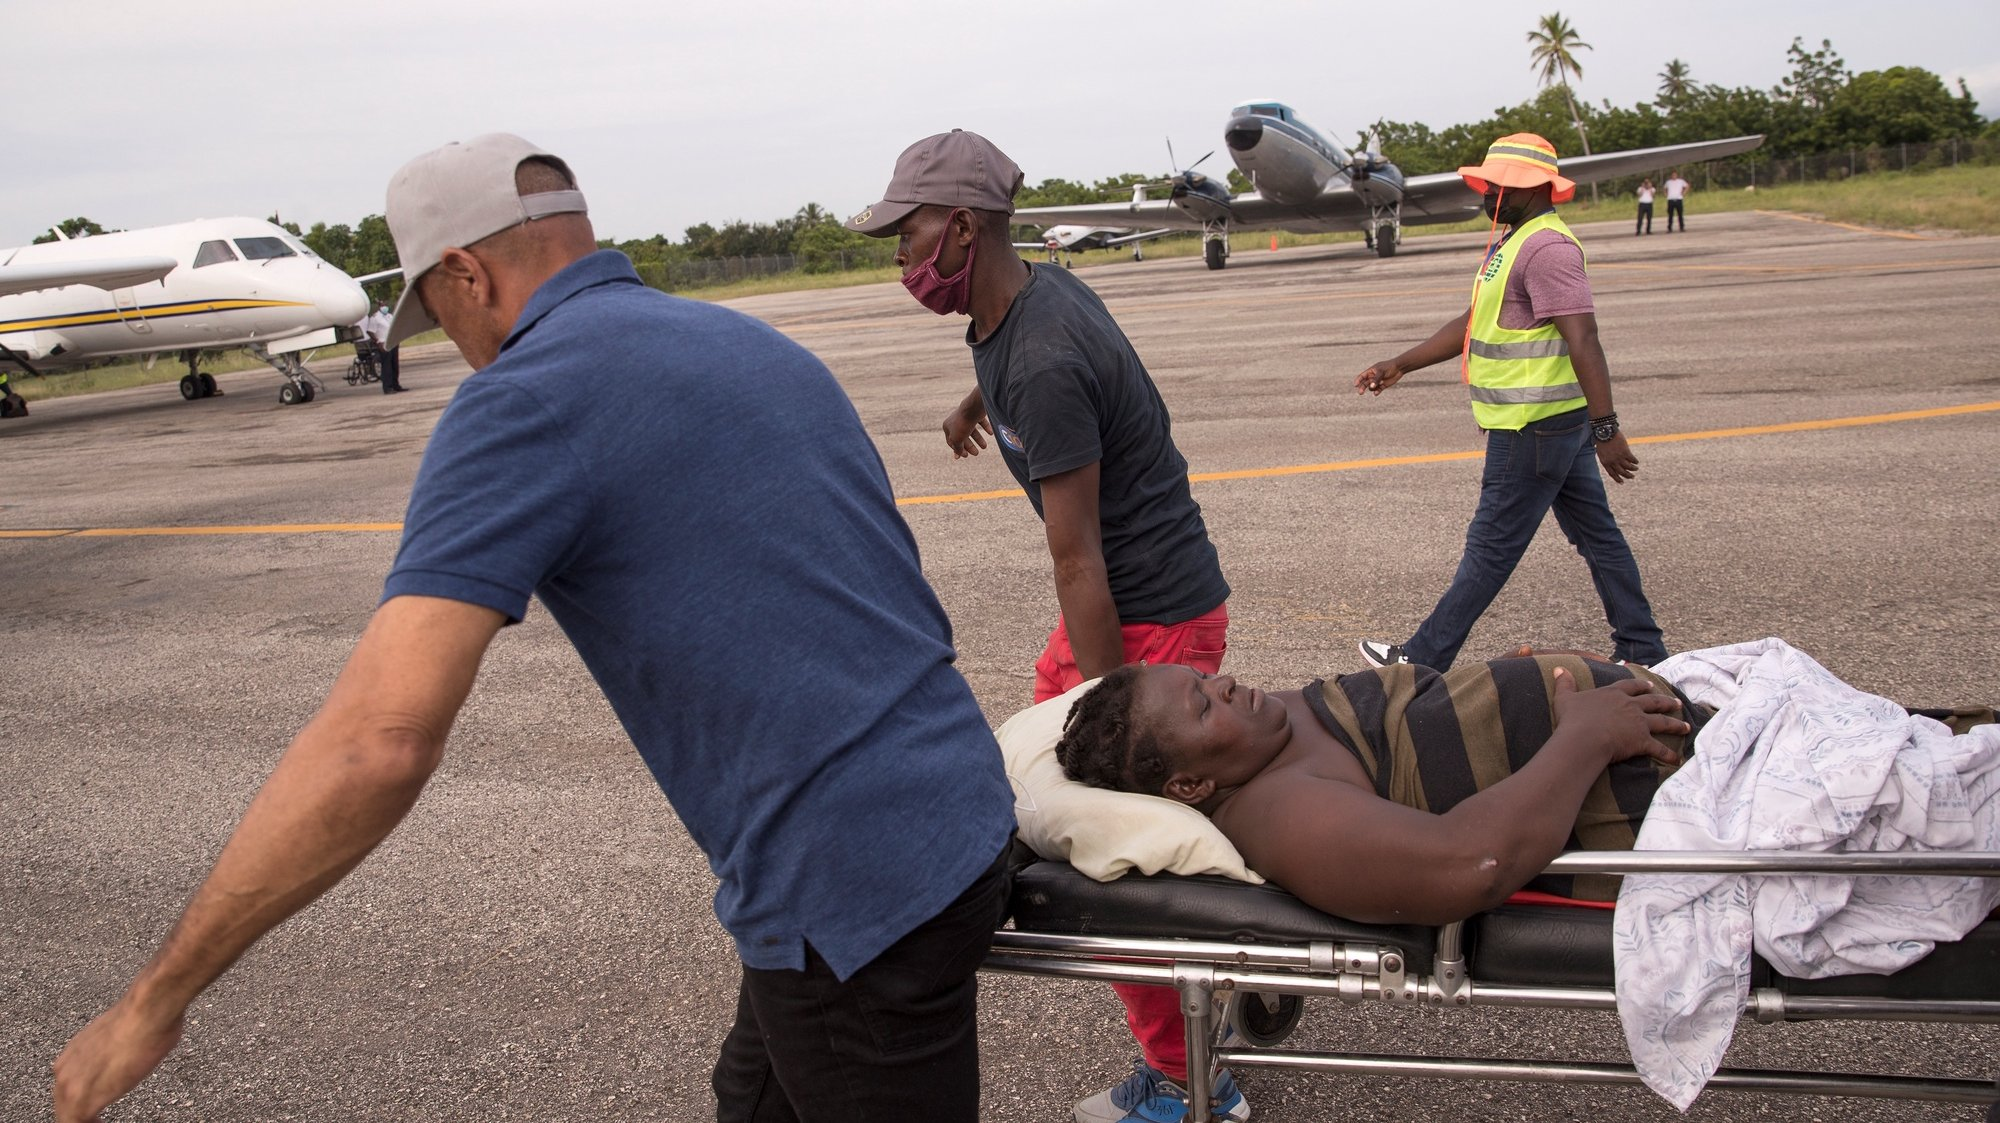 epa09420689 Some men carry a woman injured during the earthquake on a stretcher to be transferred by plane to a hospital in Port-au-Prince, from Les Cayes, Haiti, 19 August 2021. At least 2,189 people died and 12,268 were injured as a result of the 7.2 earthquake that devastated much of southern Haiti on August 14, in addition to substantial material losses, according to the latest official count.  EPA/ORLANDO BARRIA